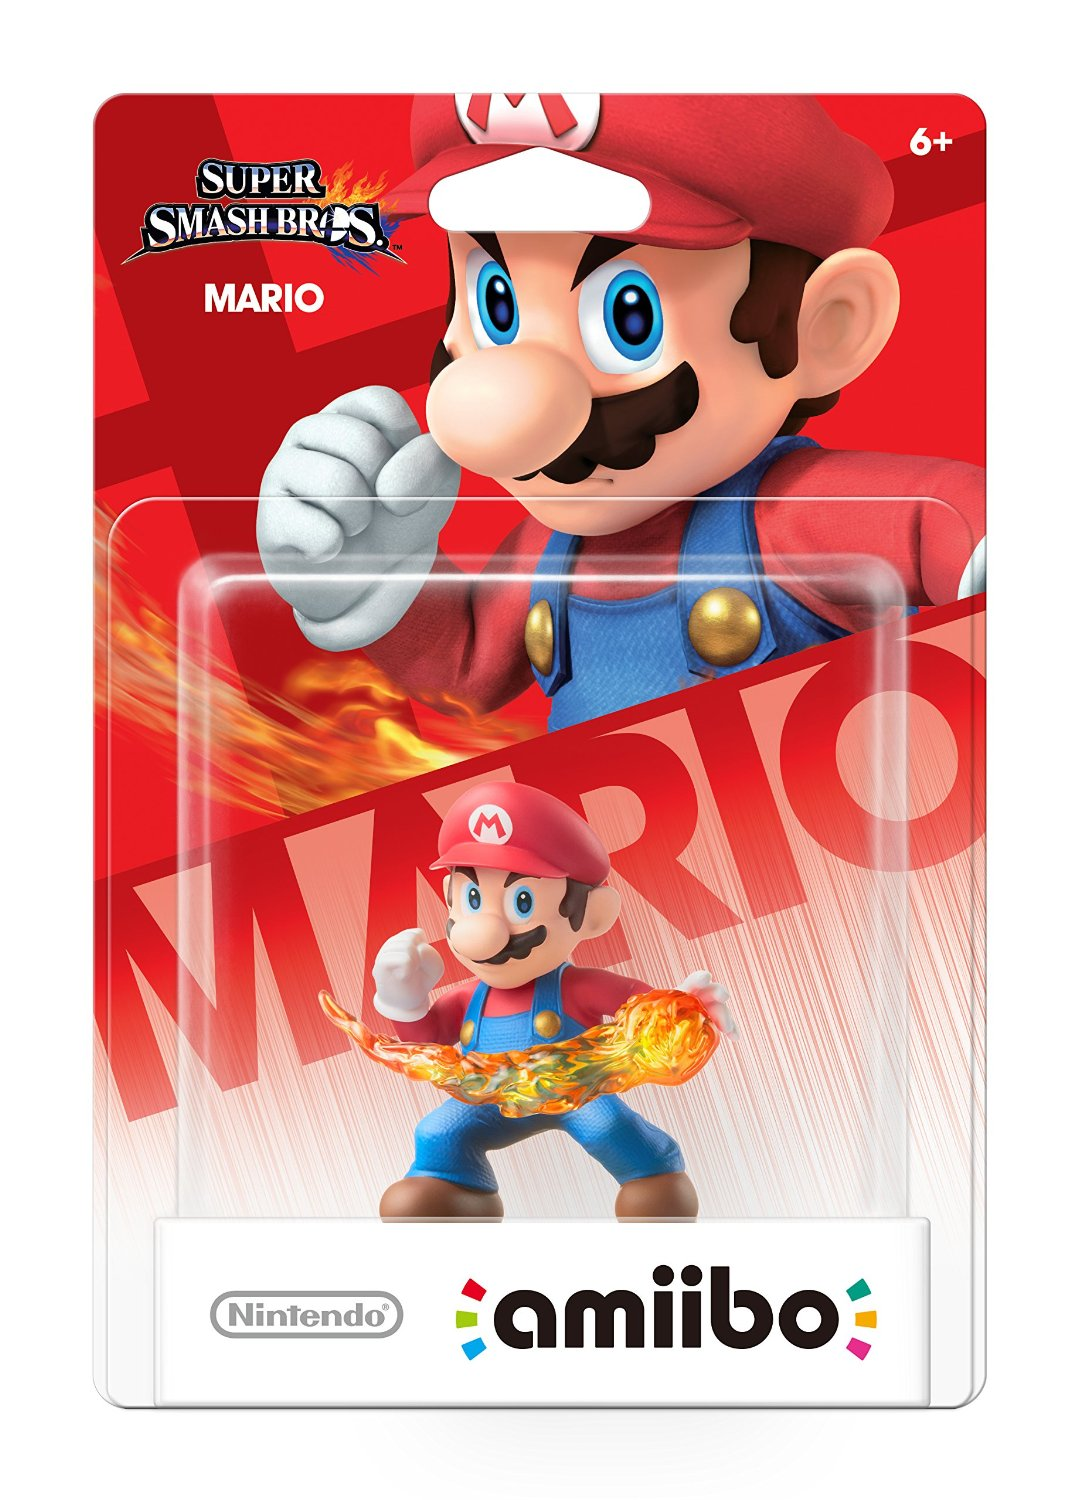 Nintendo's first round of amiibo figures available for preorder, immediately top Amazon charts